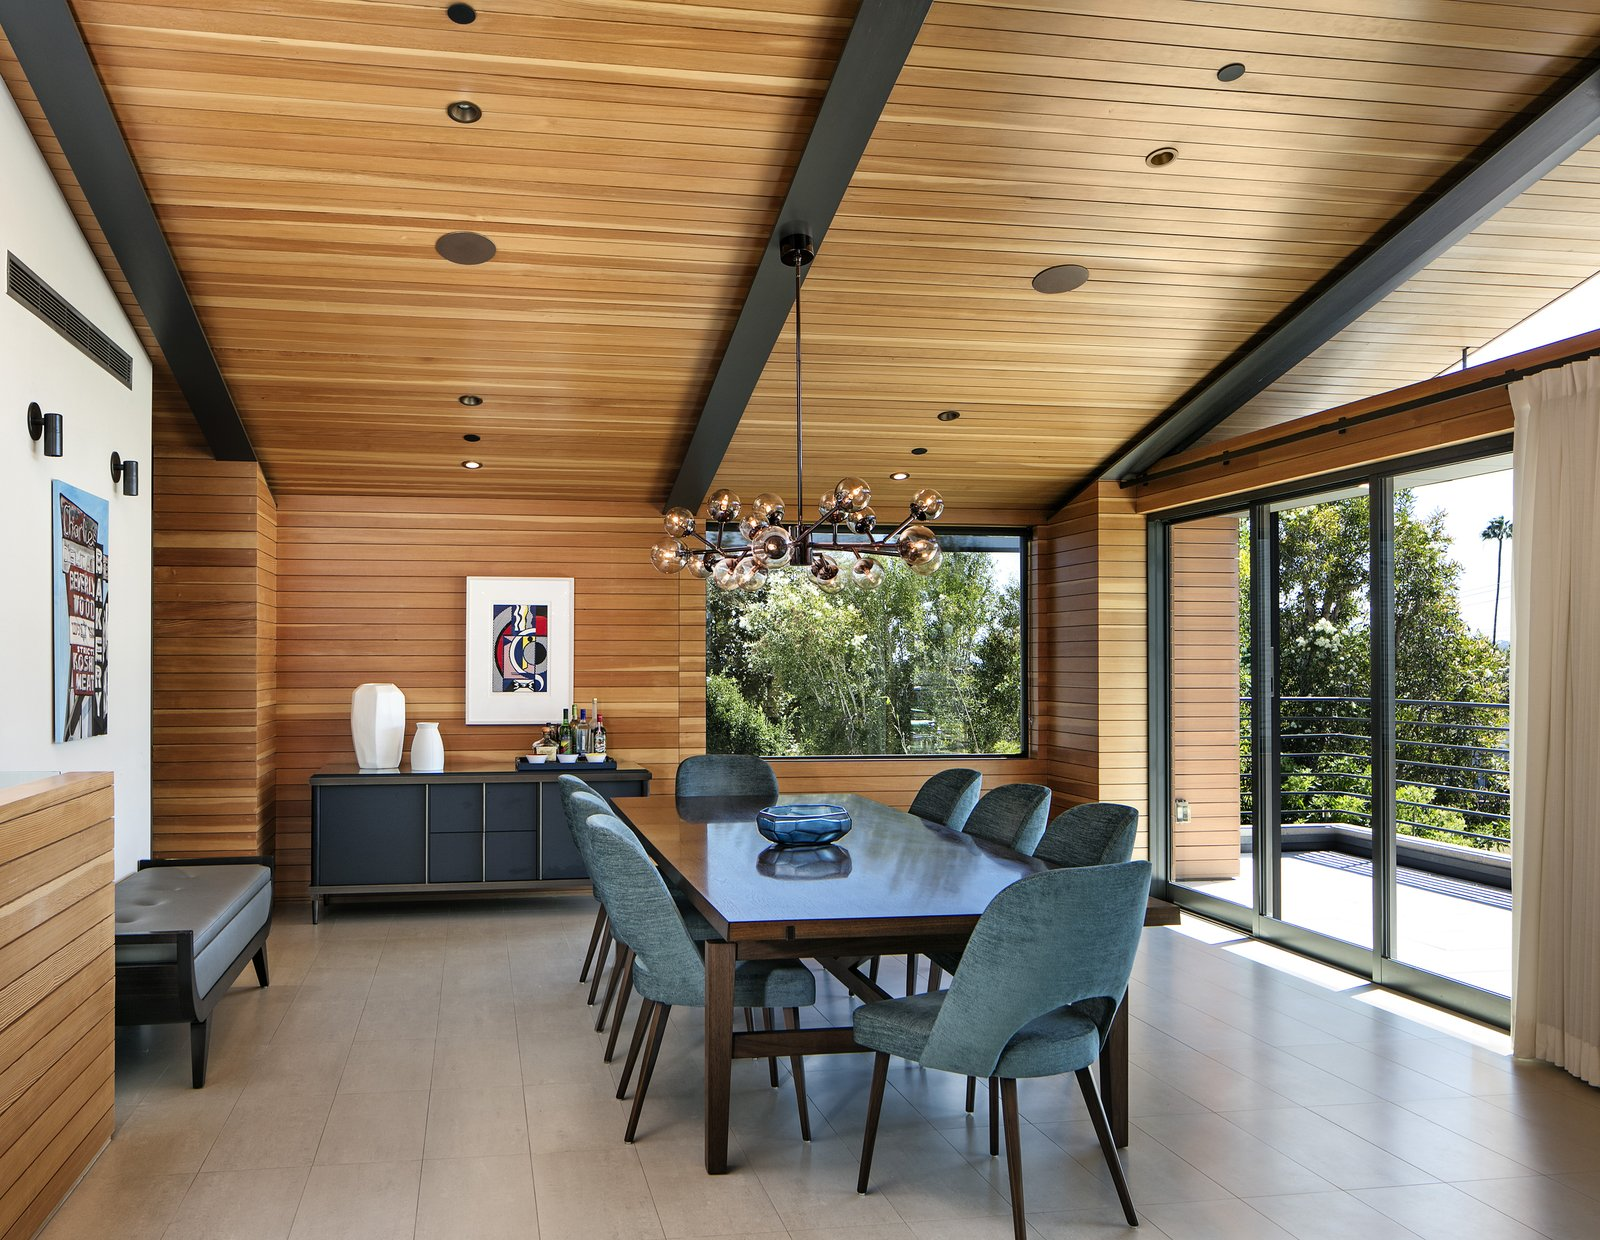 Dining Room, Table, Chair, Pendant Lighting, Bench, and Storage The formal dining area, also on the top level of the home, features Mid-Century furniture and lighting.    Cohen Residence by Abramson Teiger Architects